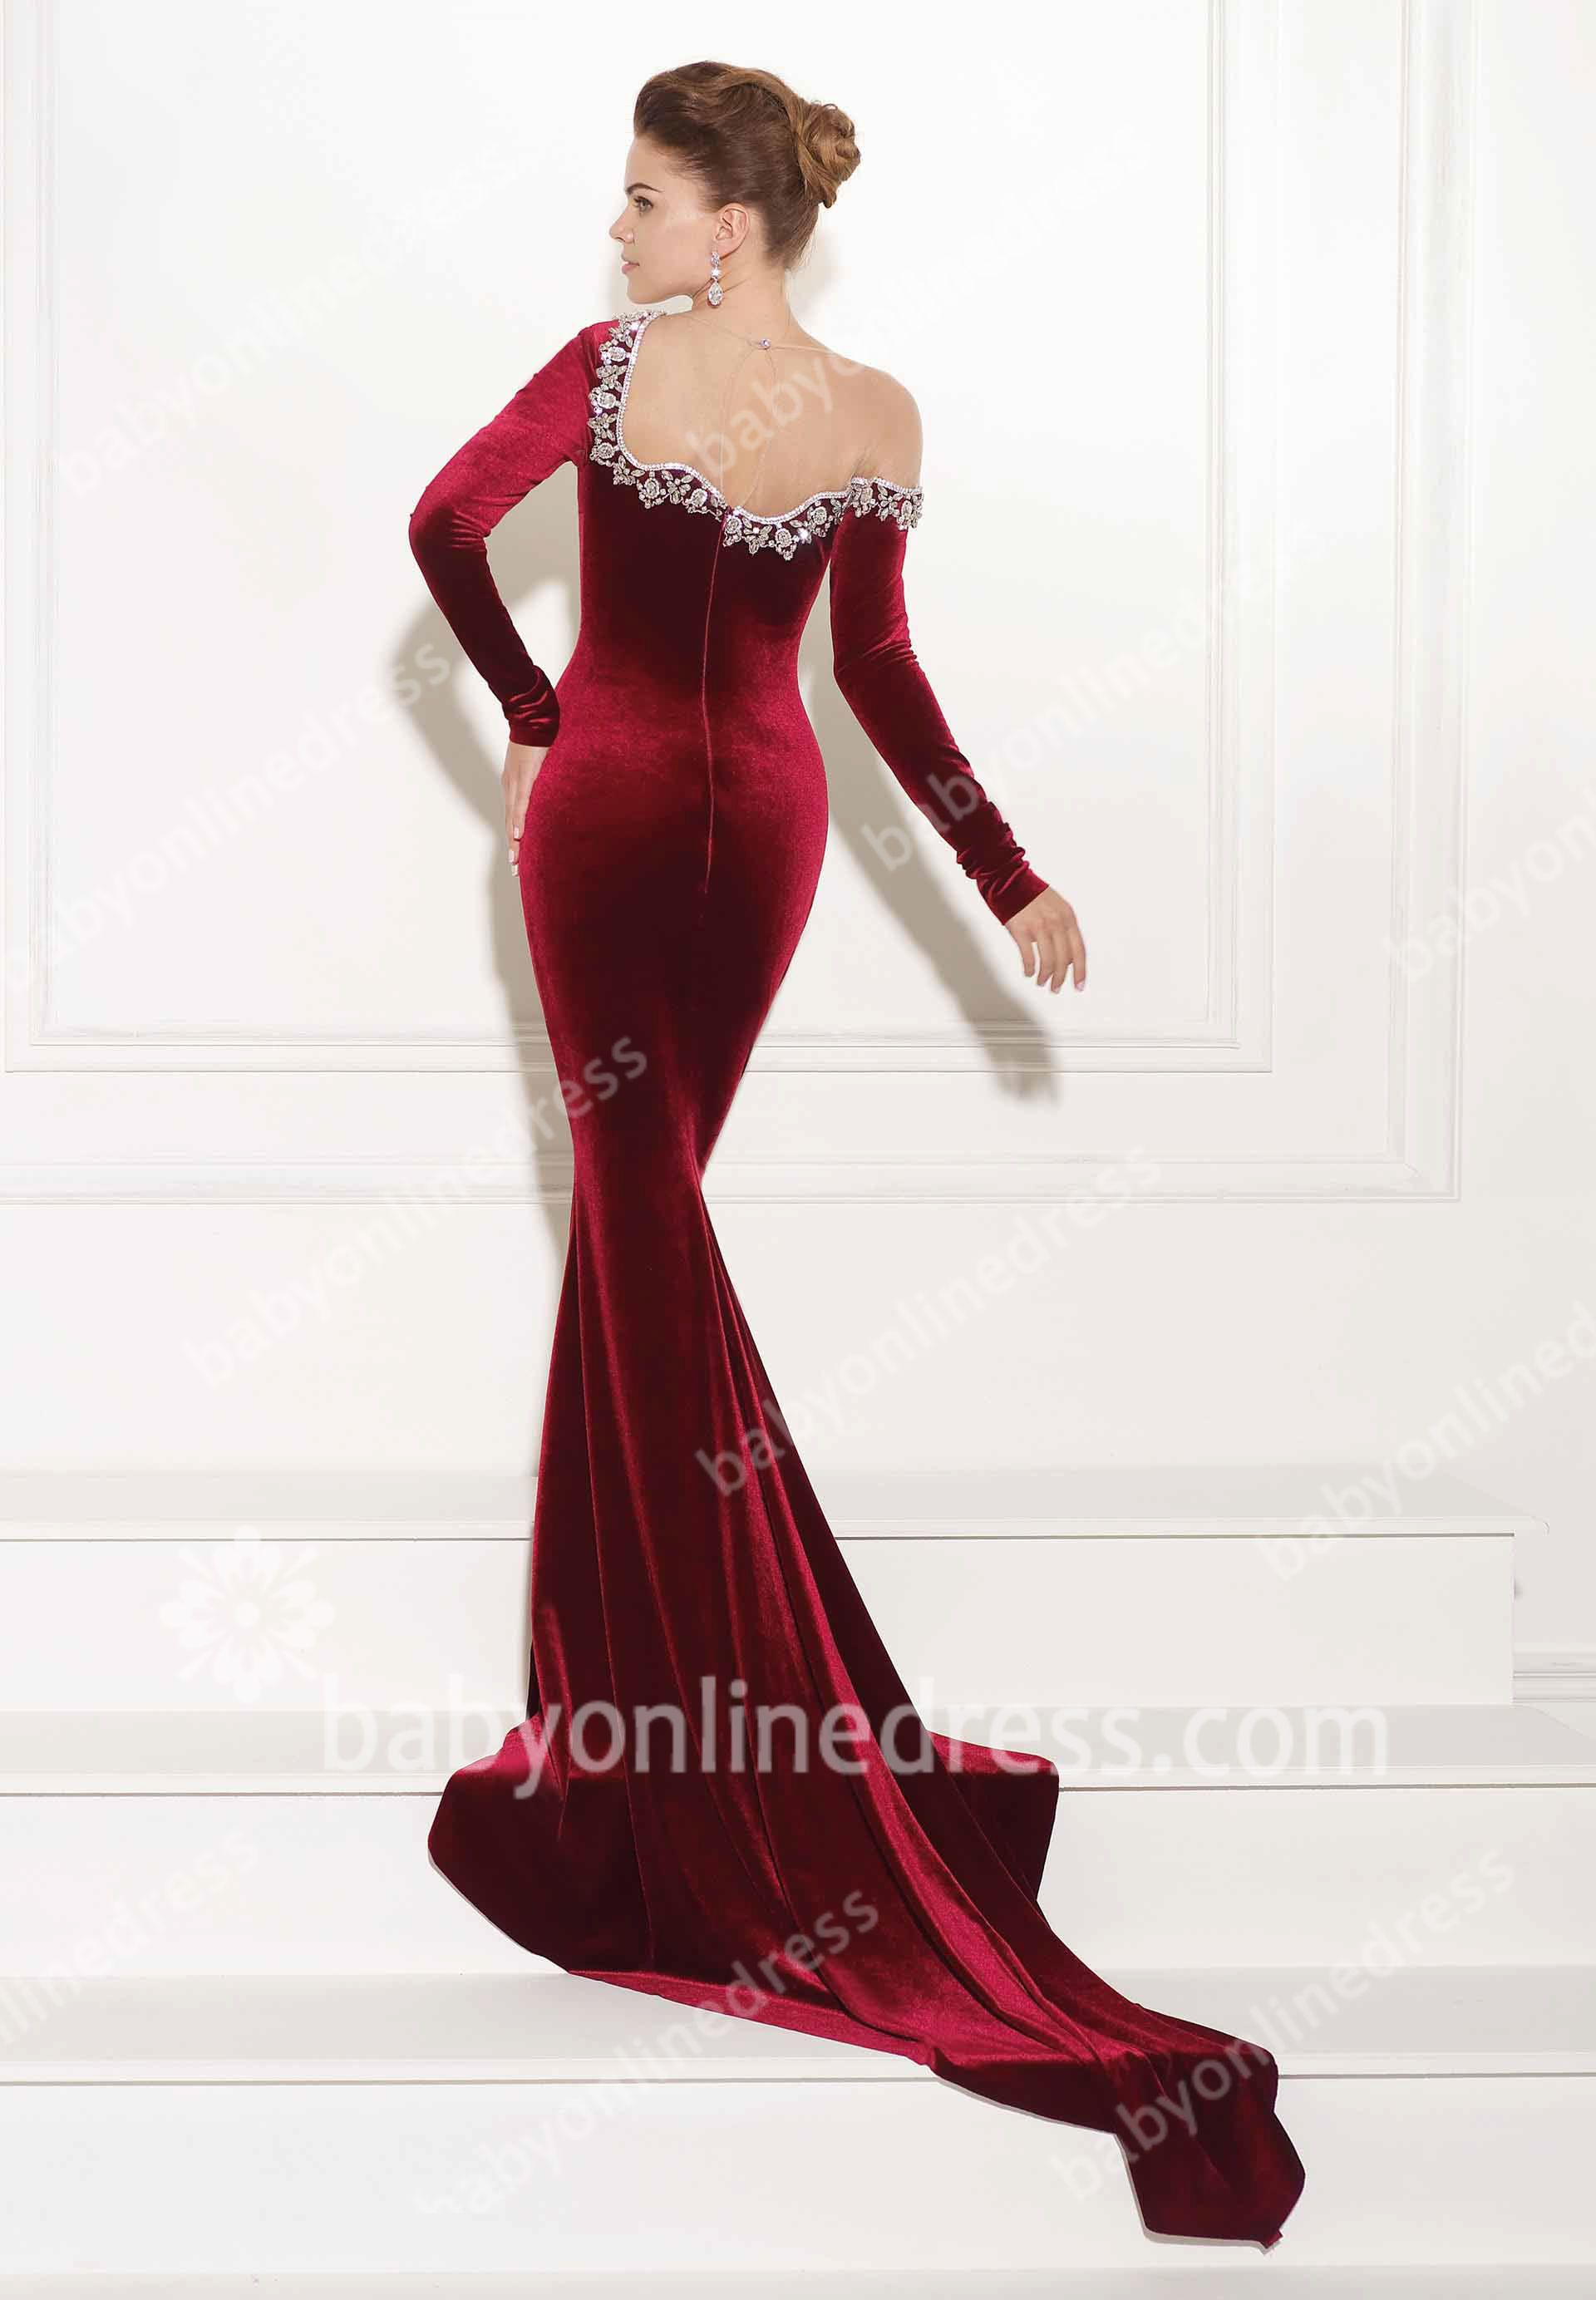 Swan velvet evening dresses off the shoulder long sleeve winter